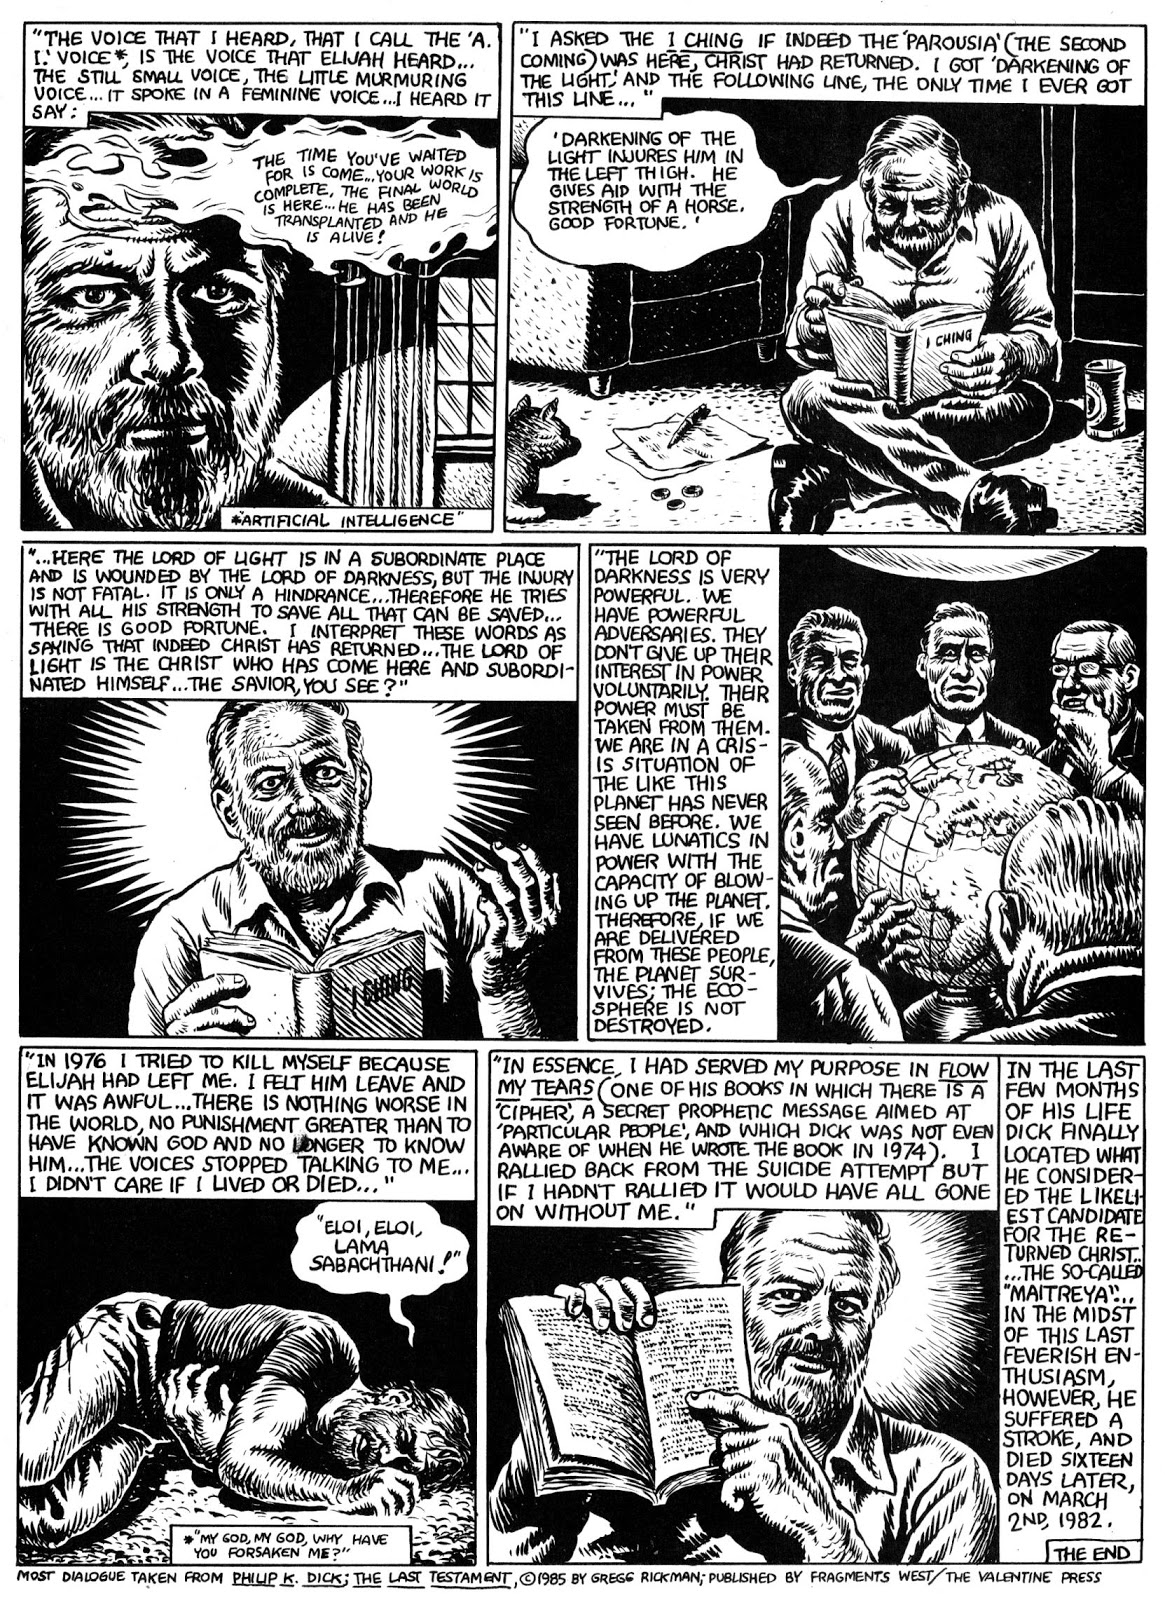 The Religious Experience of Philip K. Dick Robert Crumb